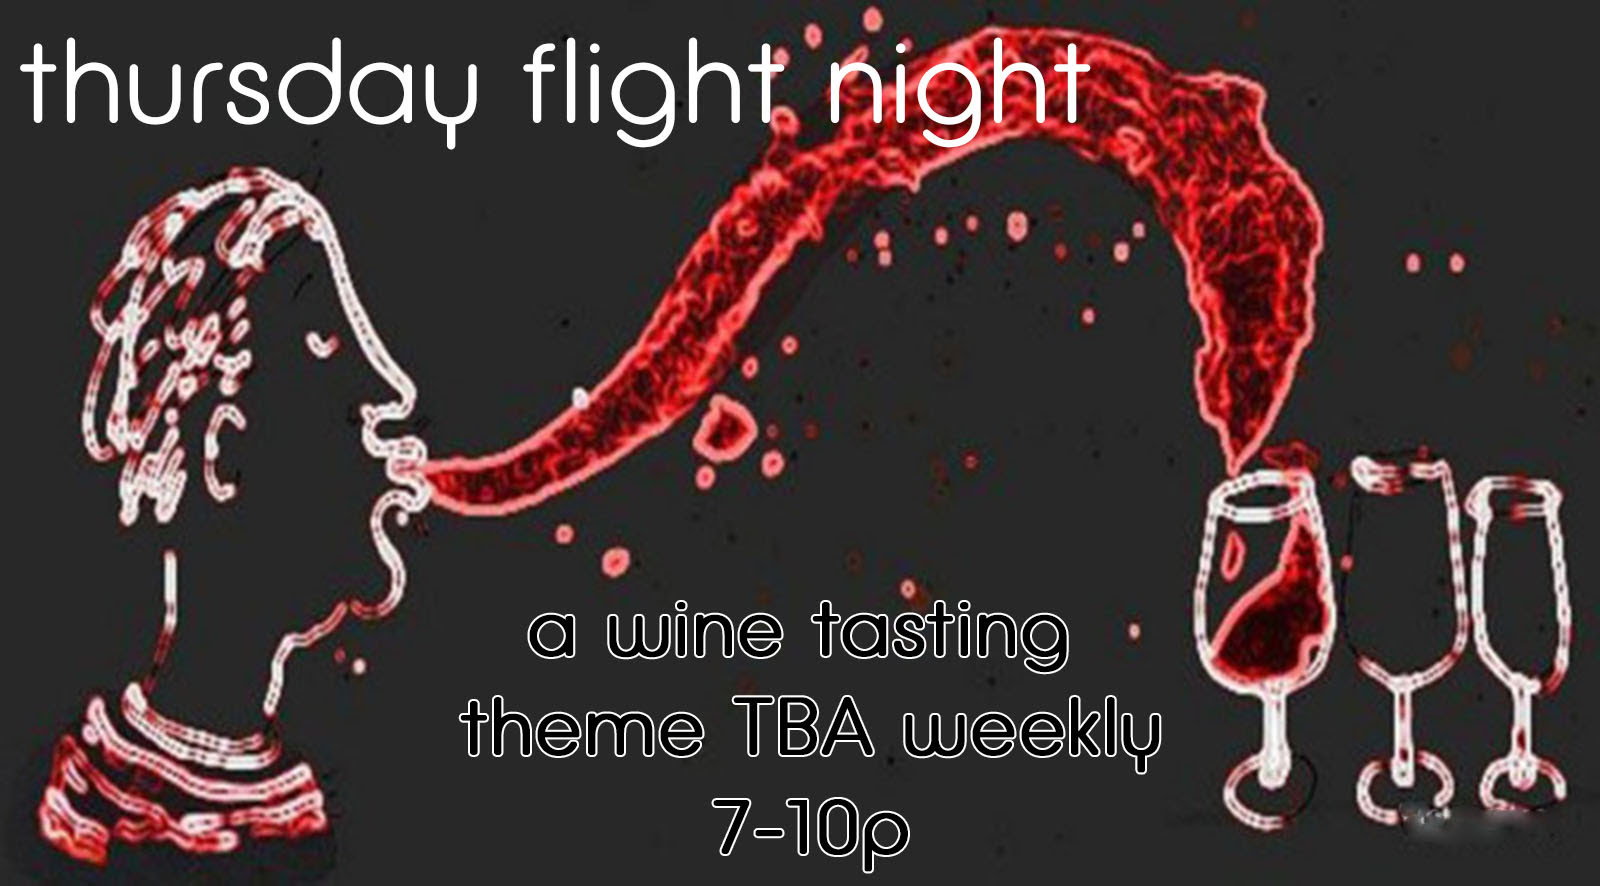 91514 Thursday Flight Night